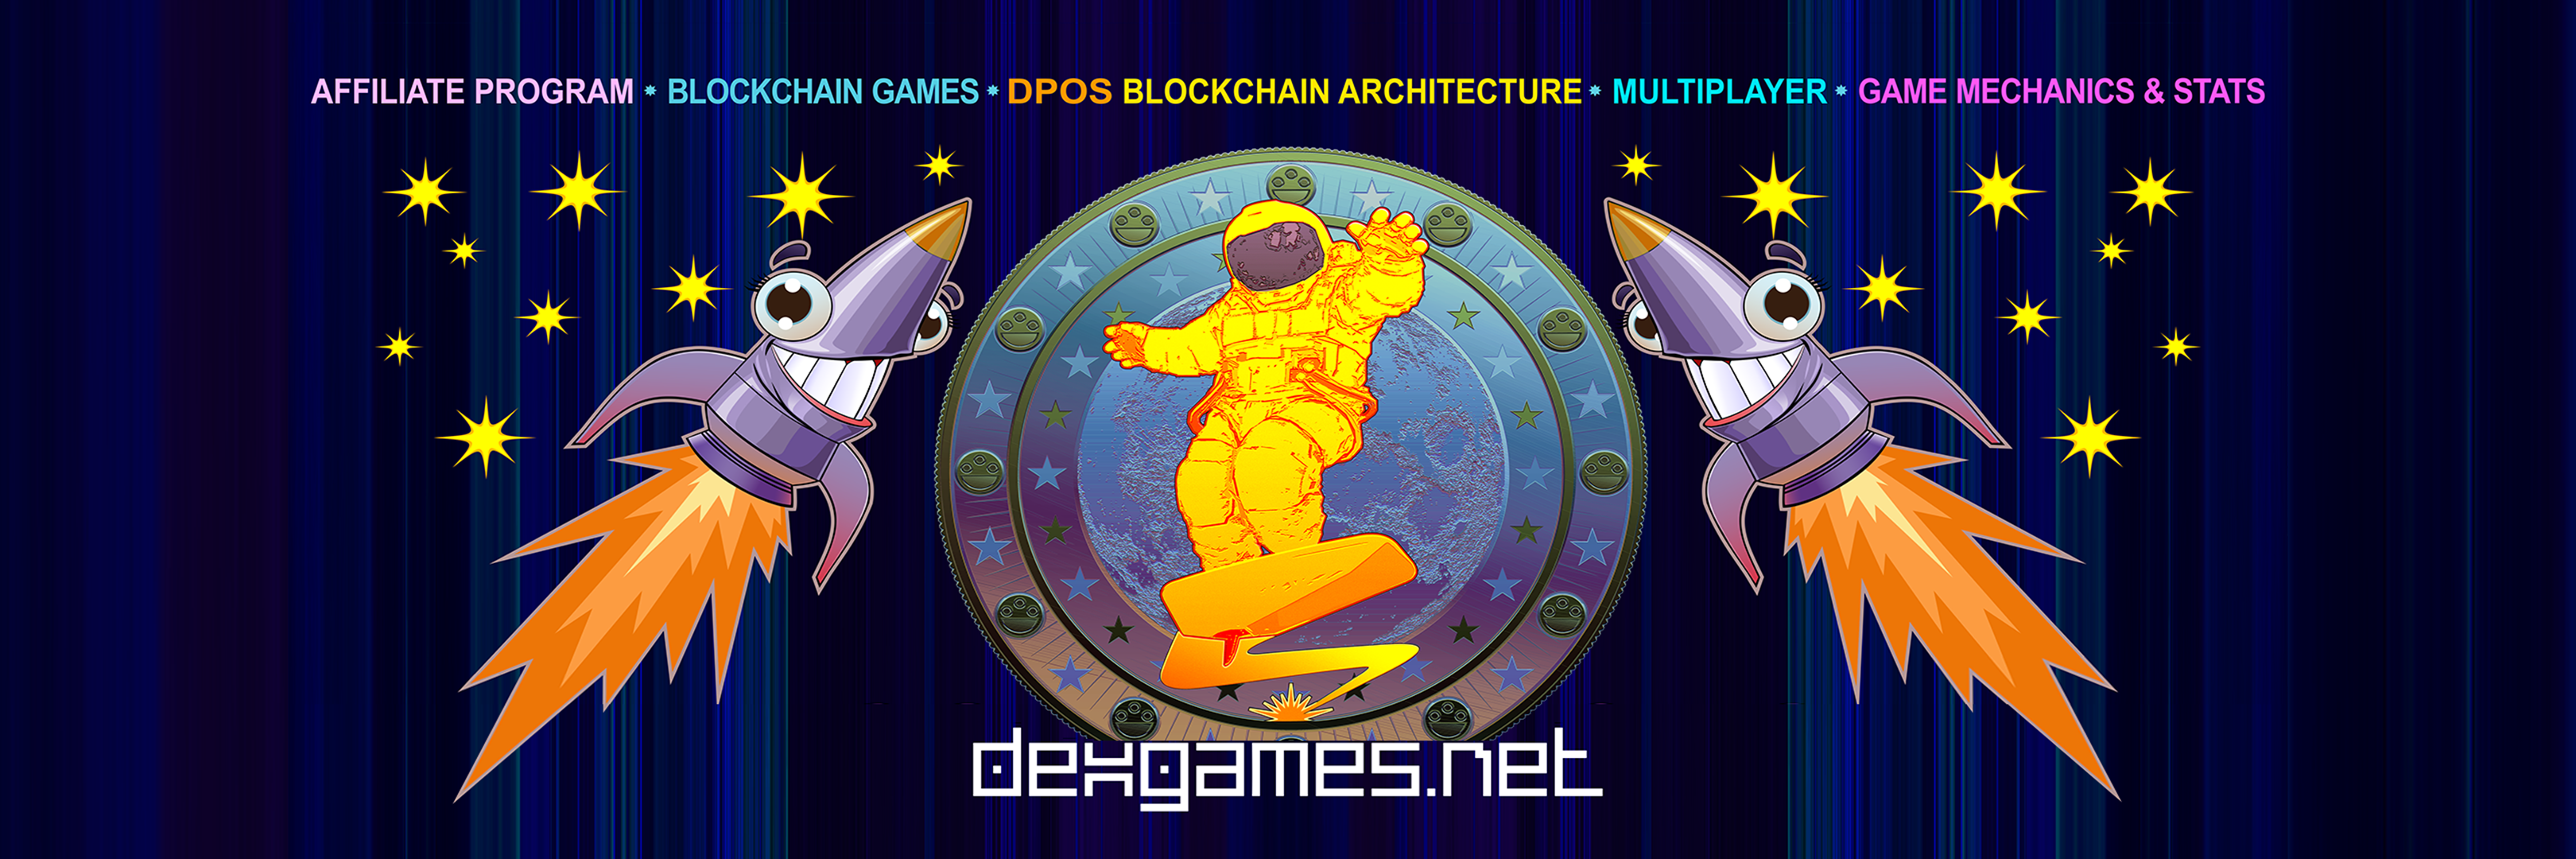 Heads or Tails Multiplayer DexGames banner